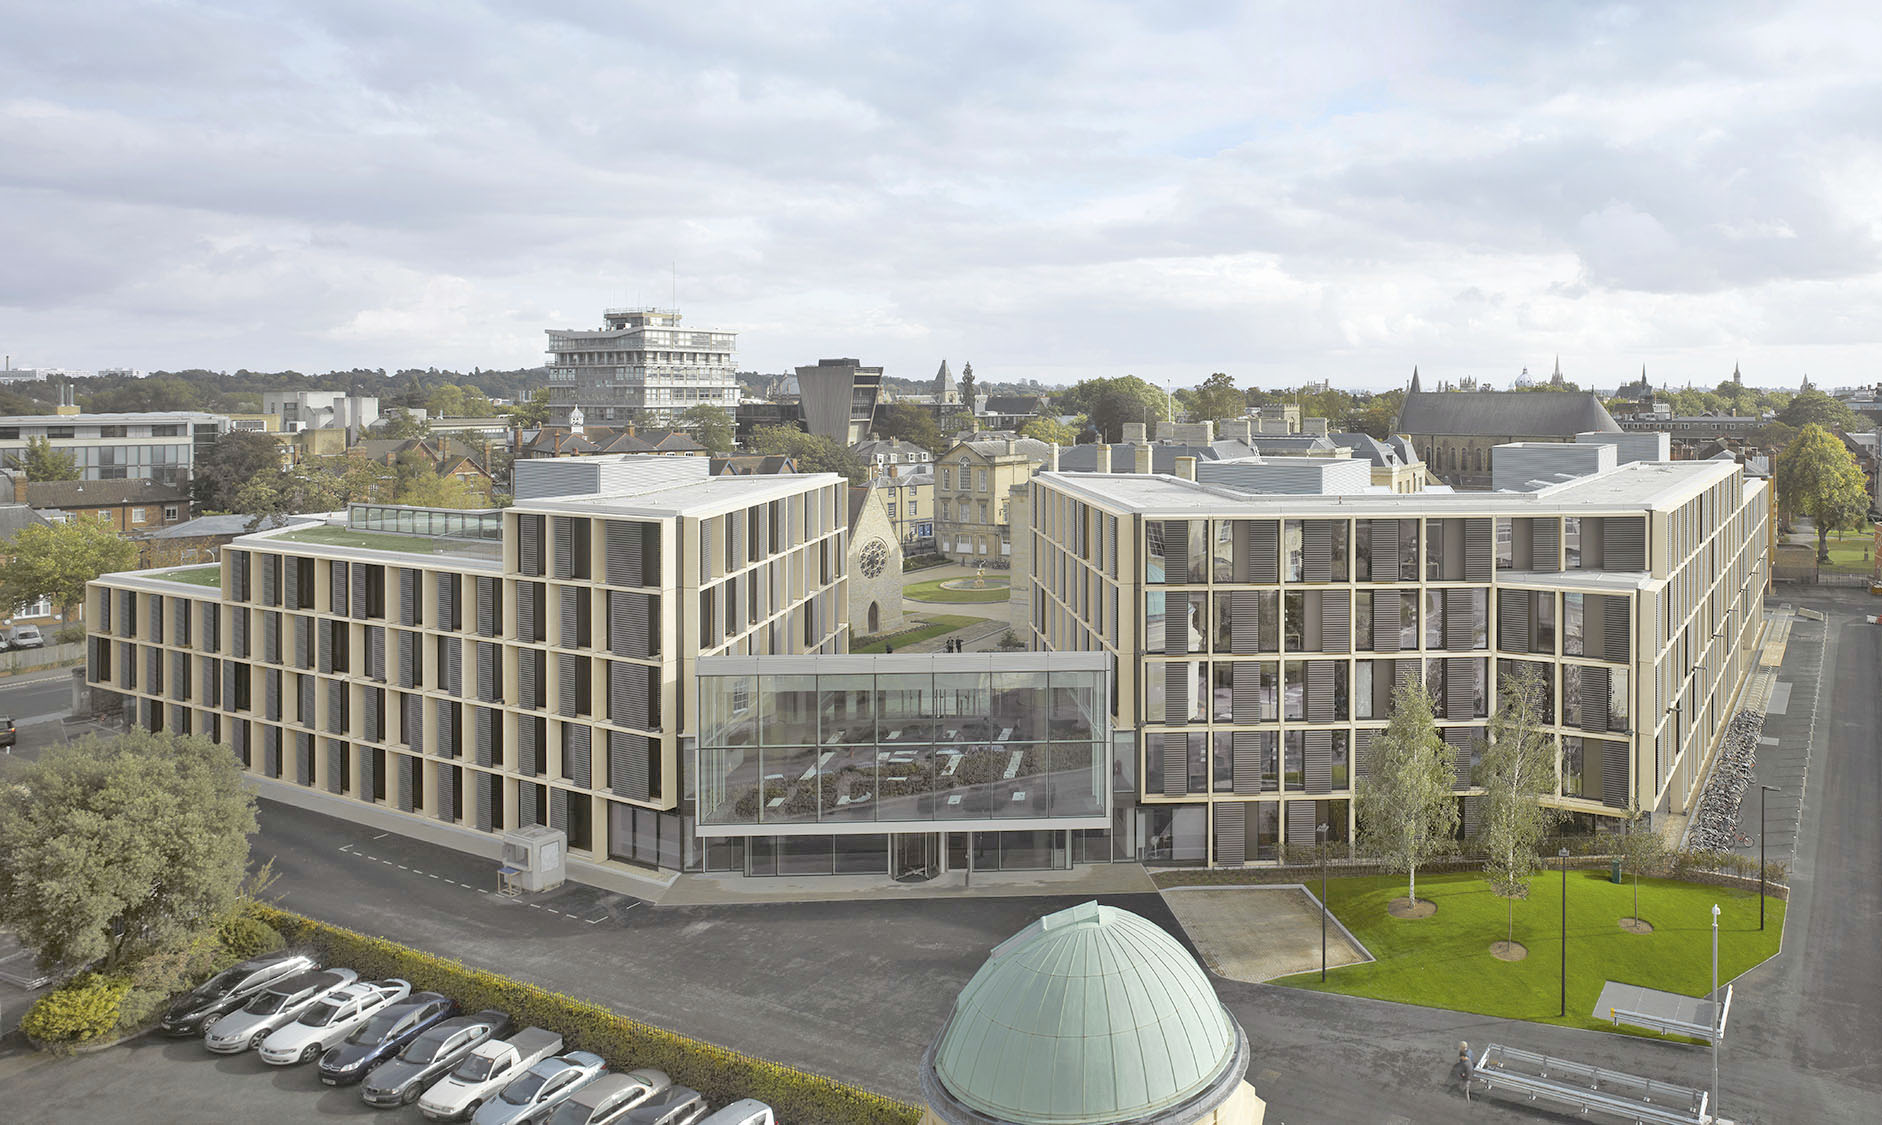 Mathematical Institute, University of Oxford, 2014 / Courtesy of Rafael Viñoly Architects